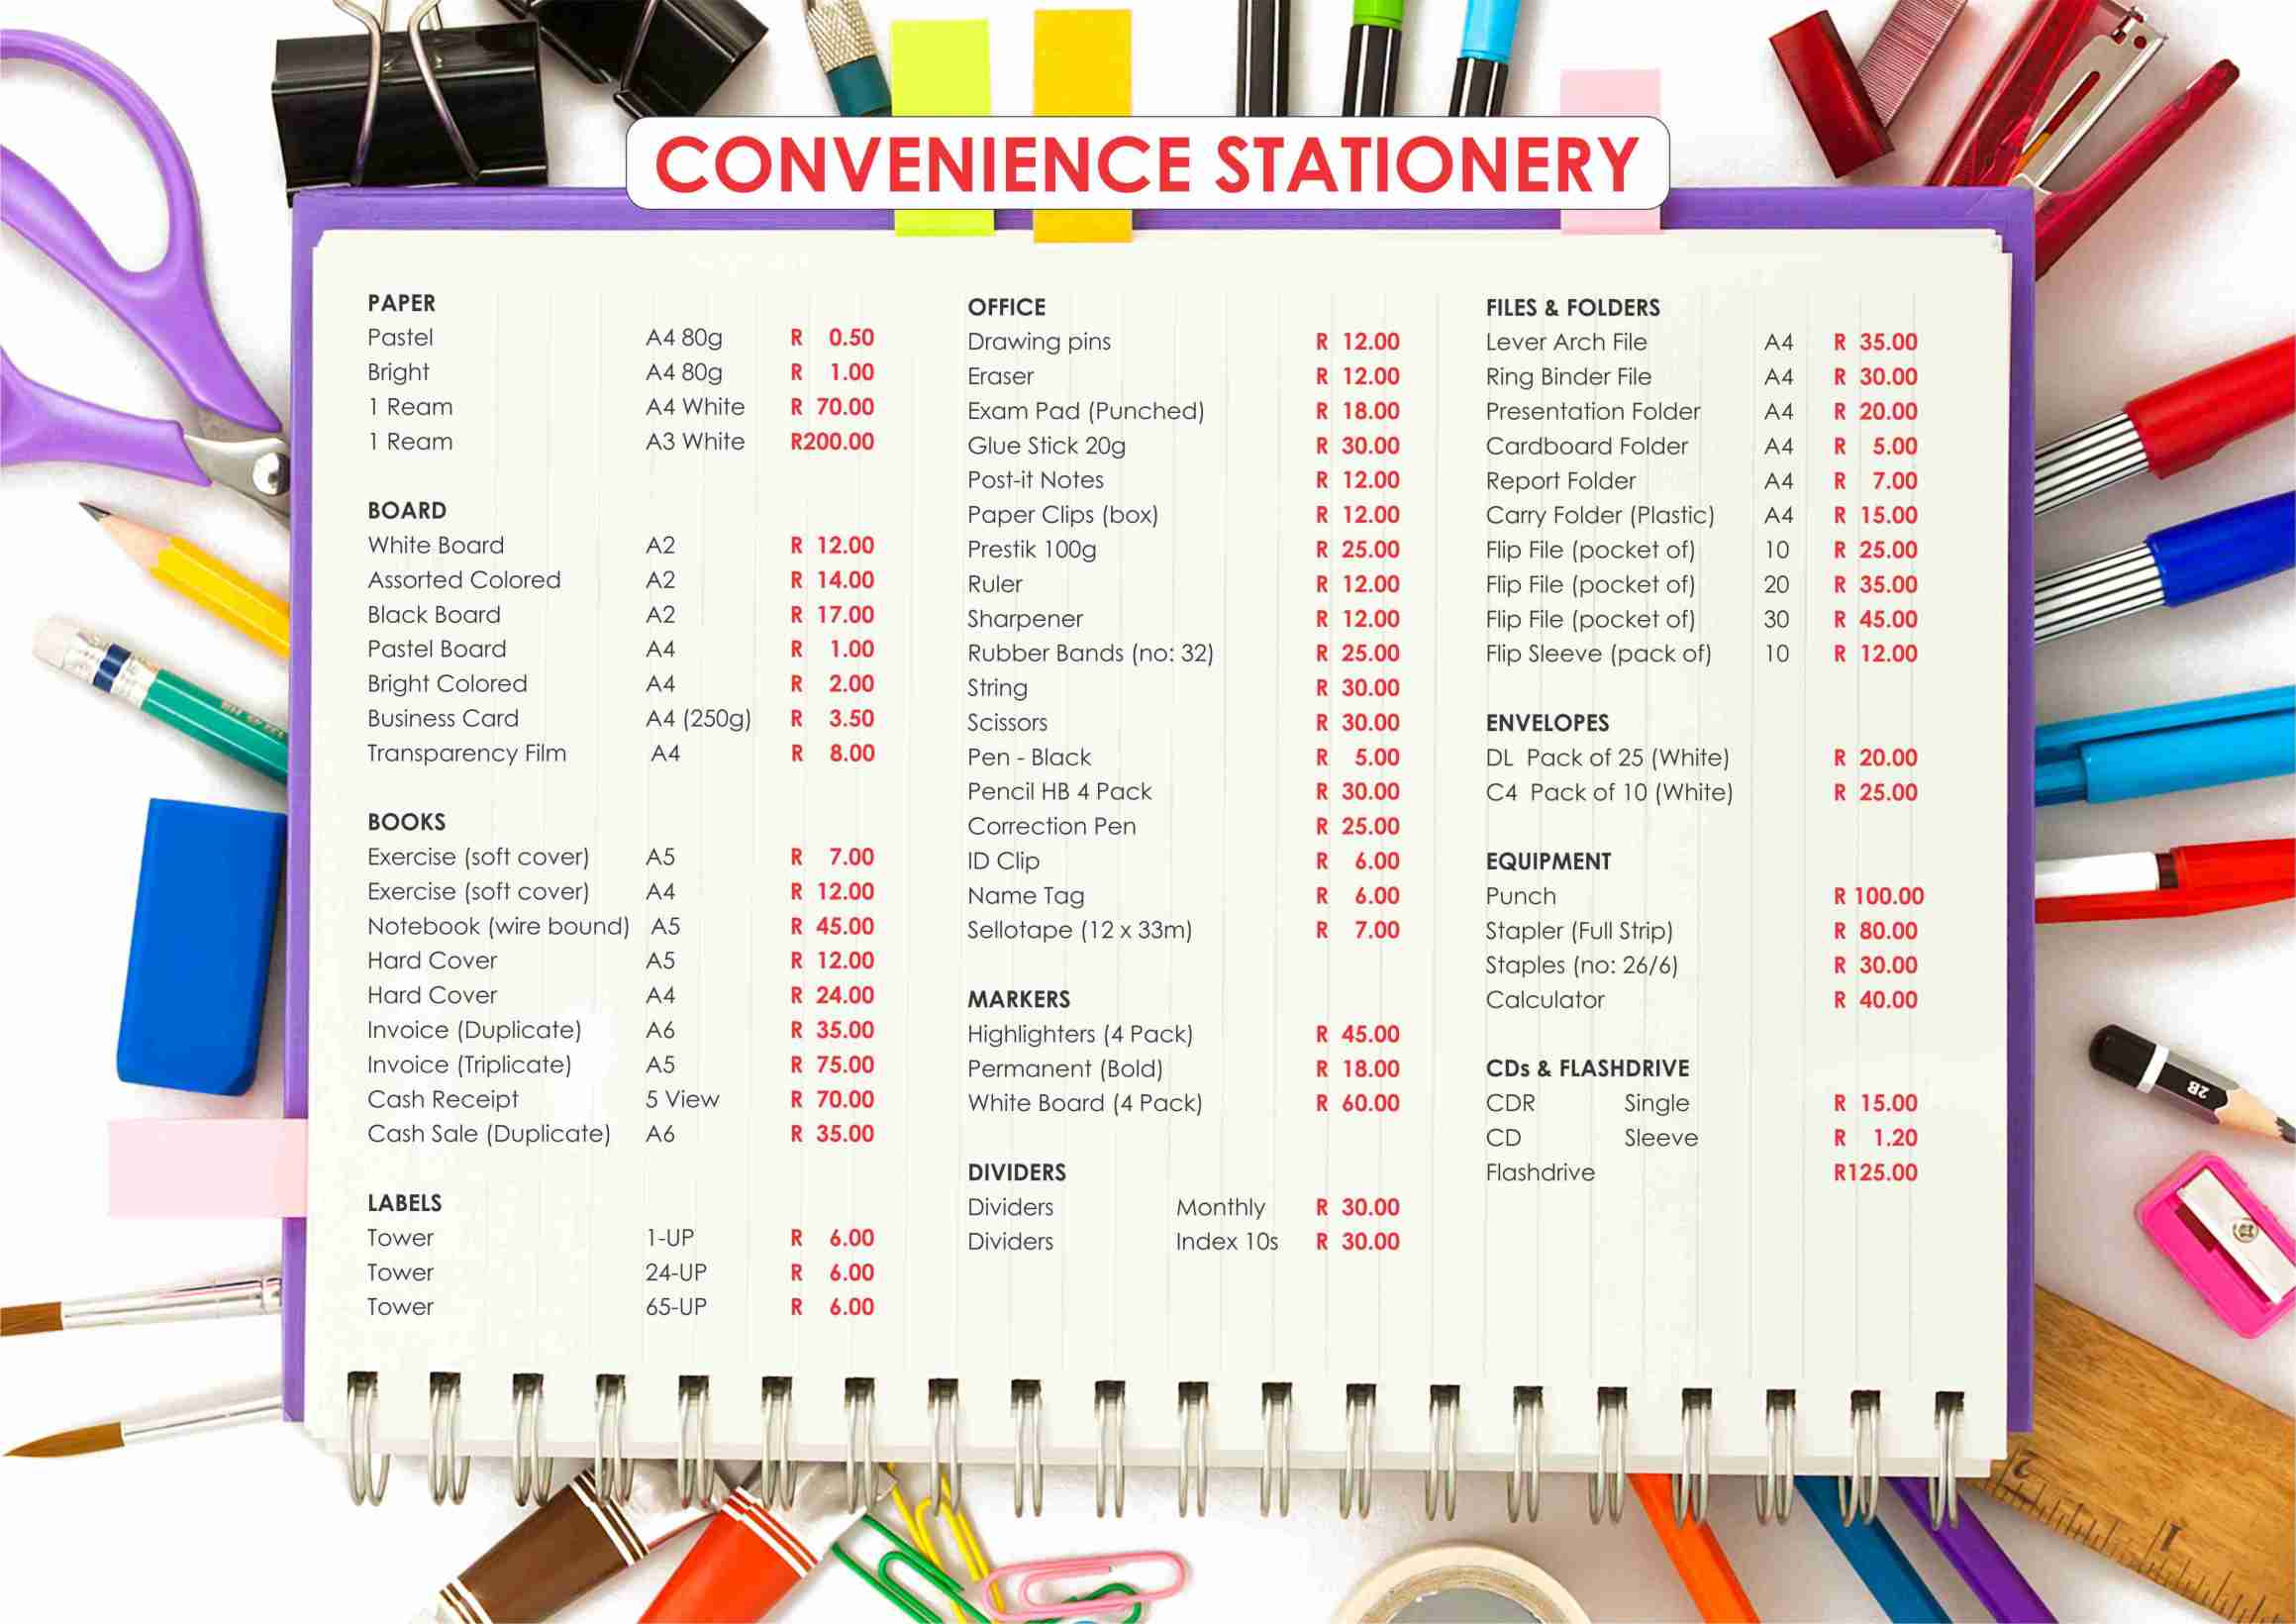 Convenience Stationery A3 Slatwall list Oct 2018